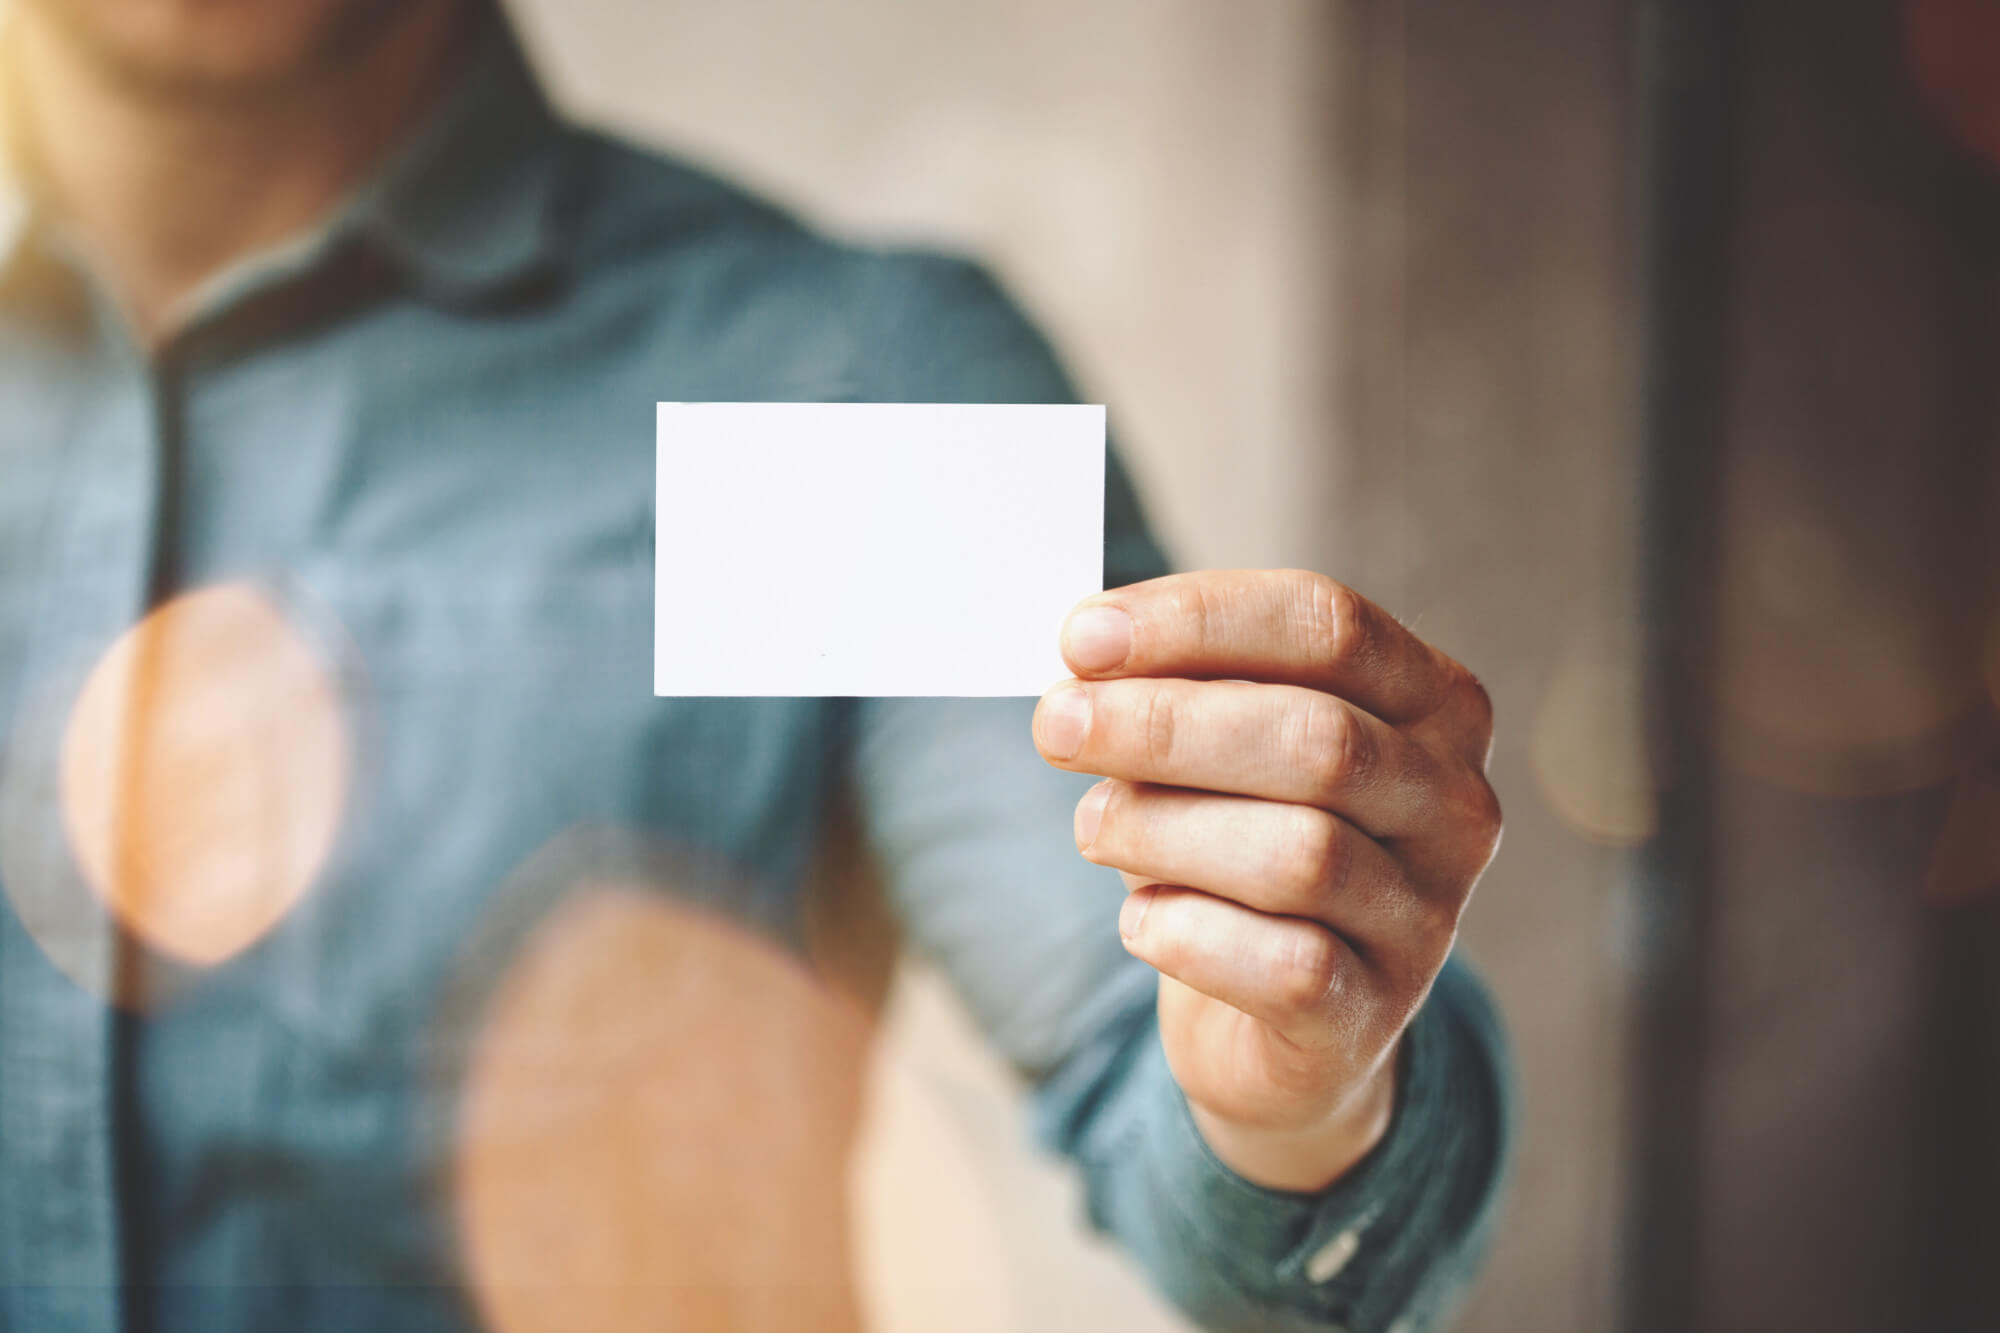 What Makes a Good Business Card? 6 Golden Rules to Follow for a Great Card